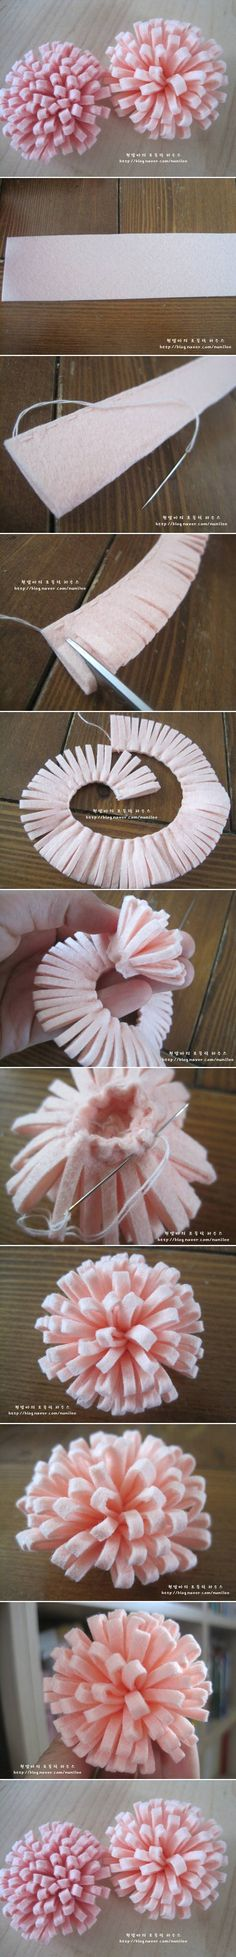 DIY Simple Easy Felt Flower DIY Projects | UsefulDIY.com